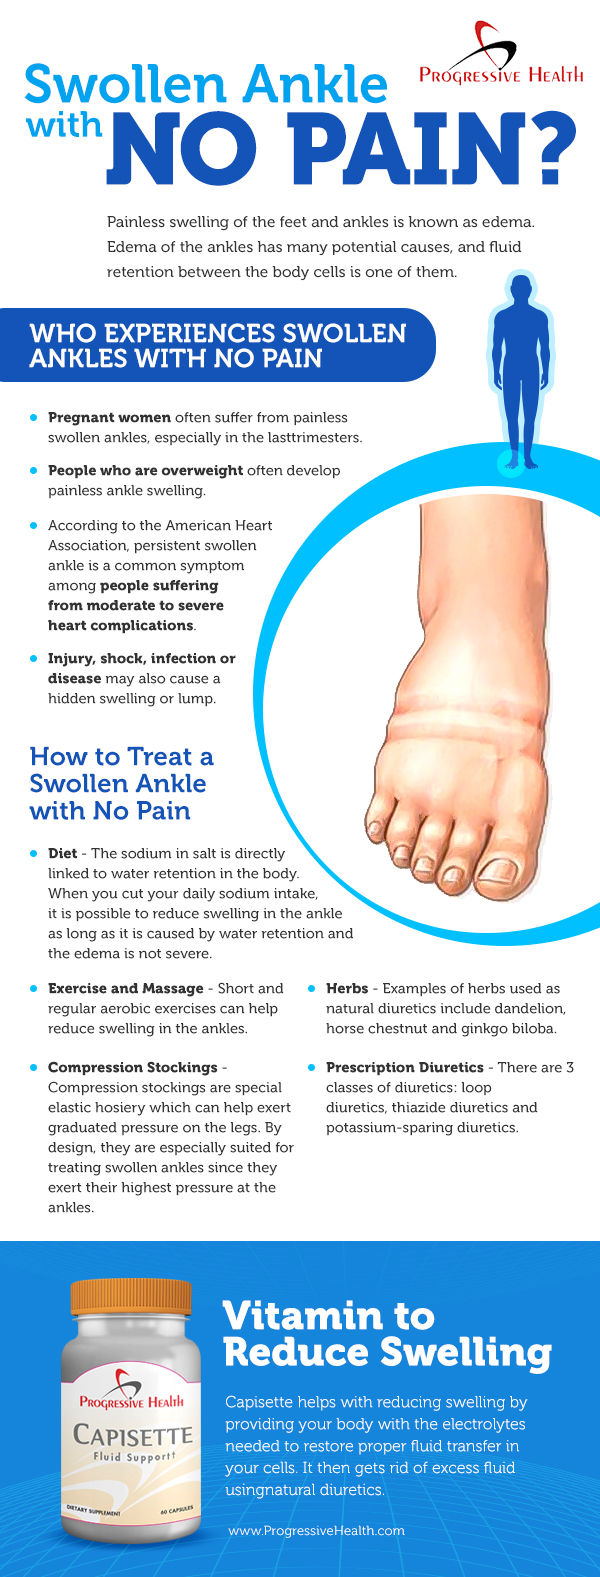 Swollen ankles with no pain